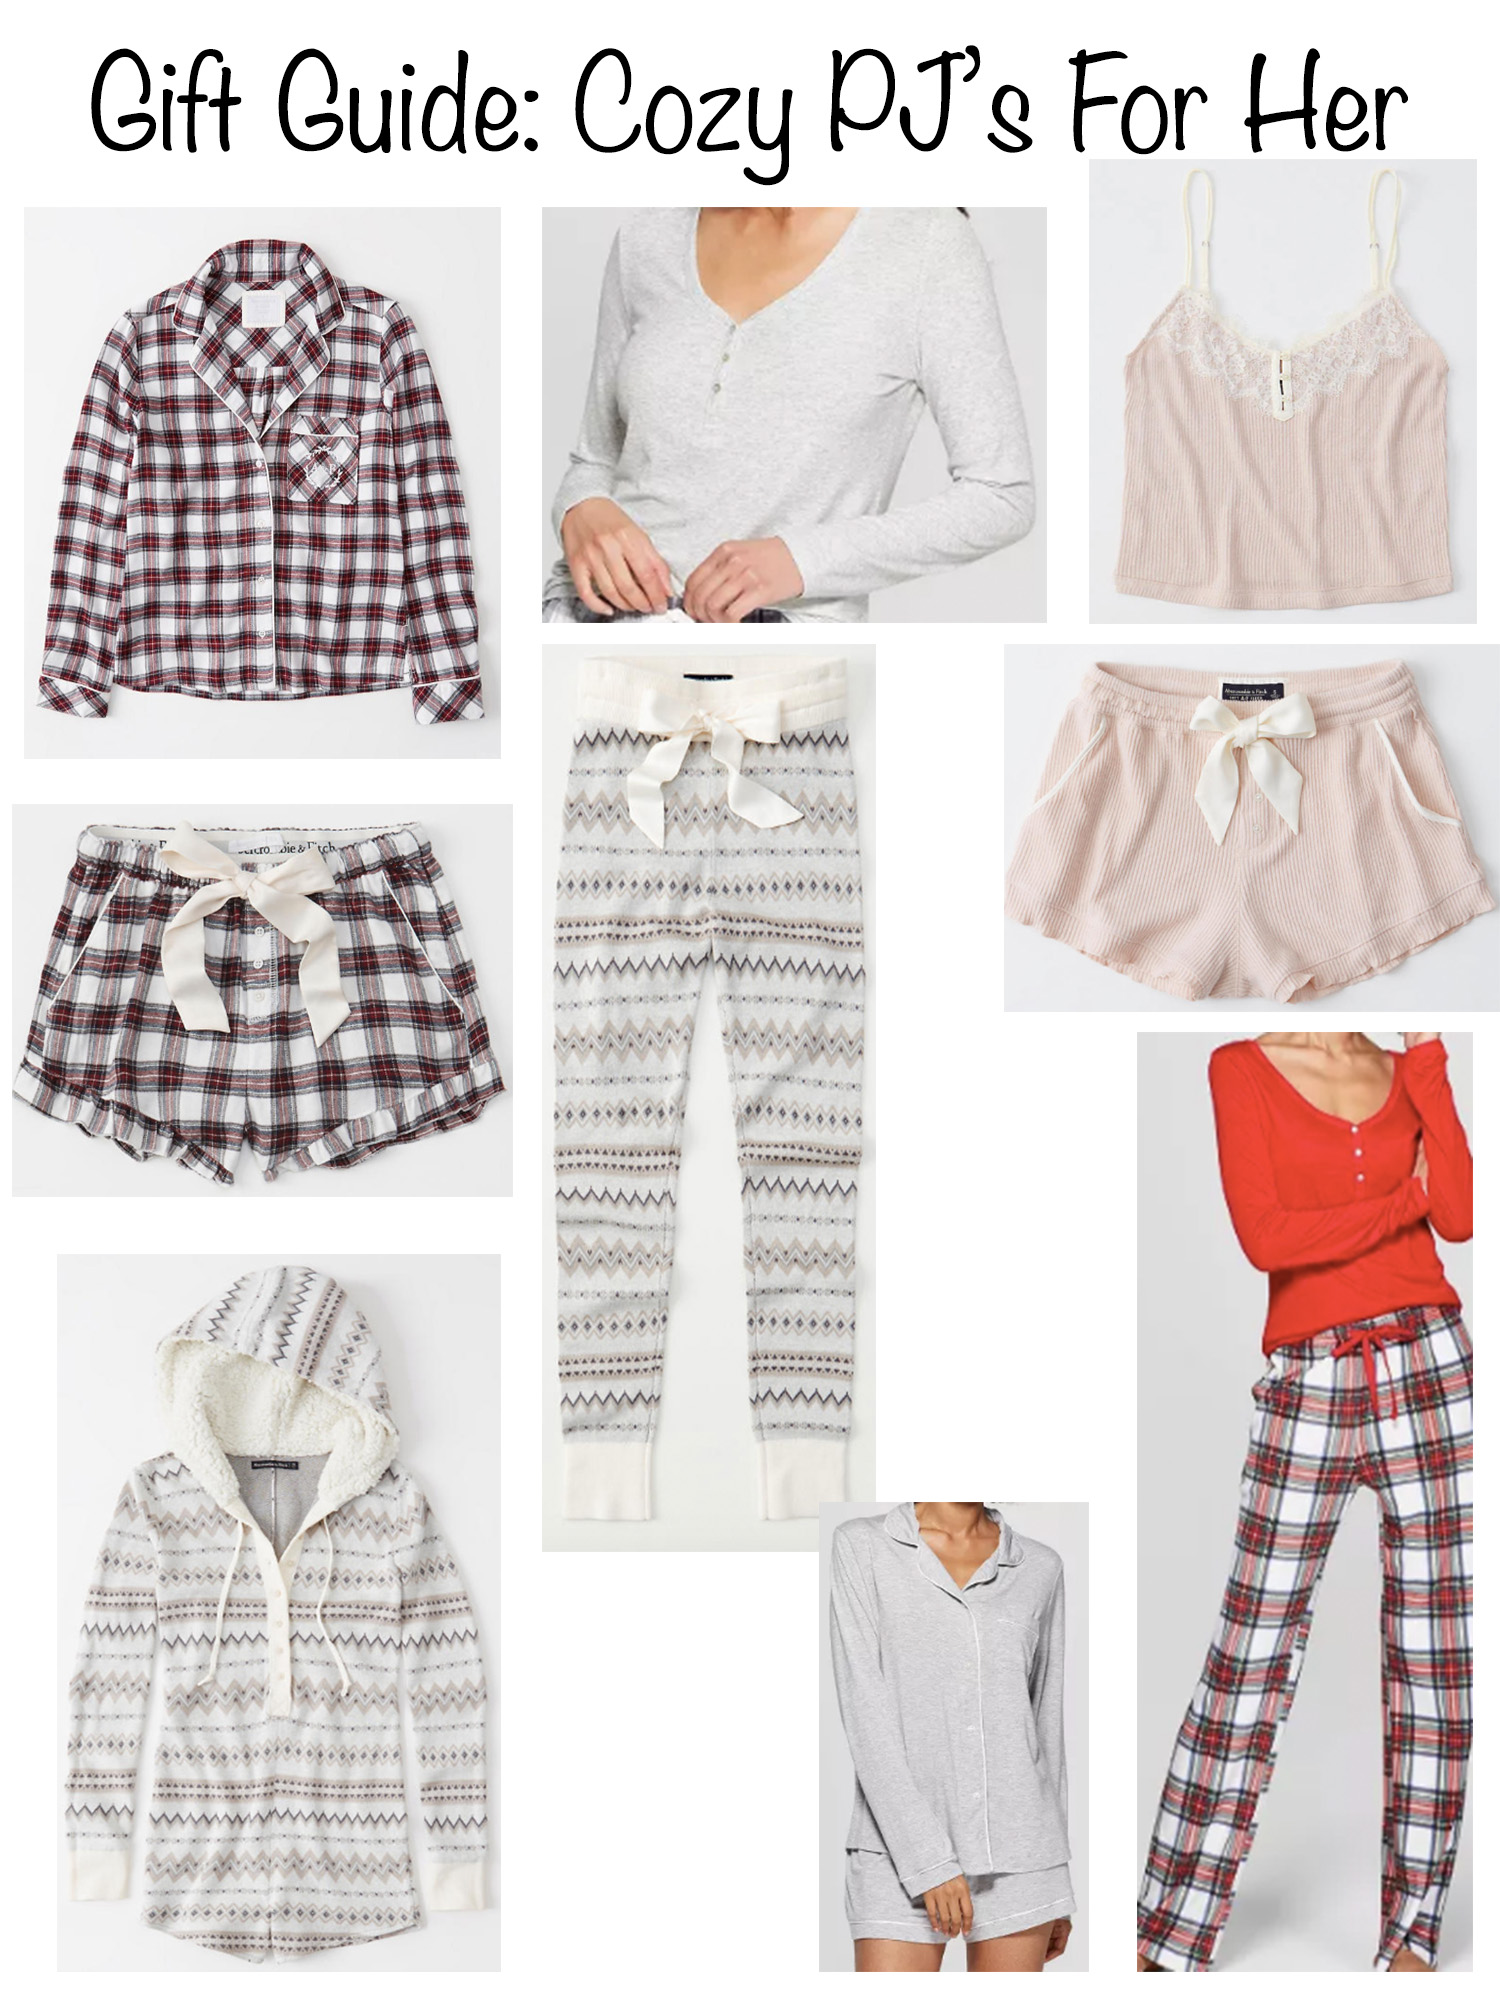 Cozy PJs For Her